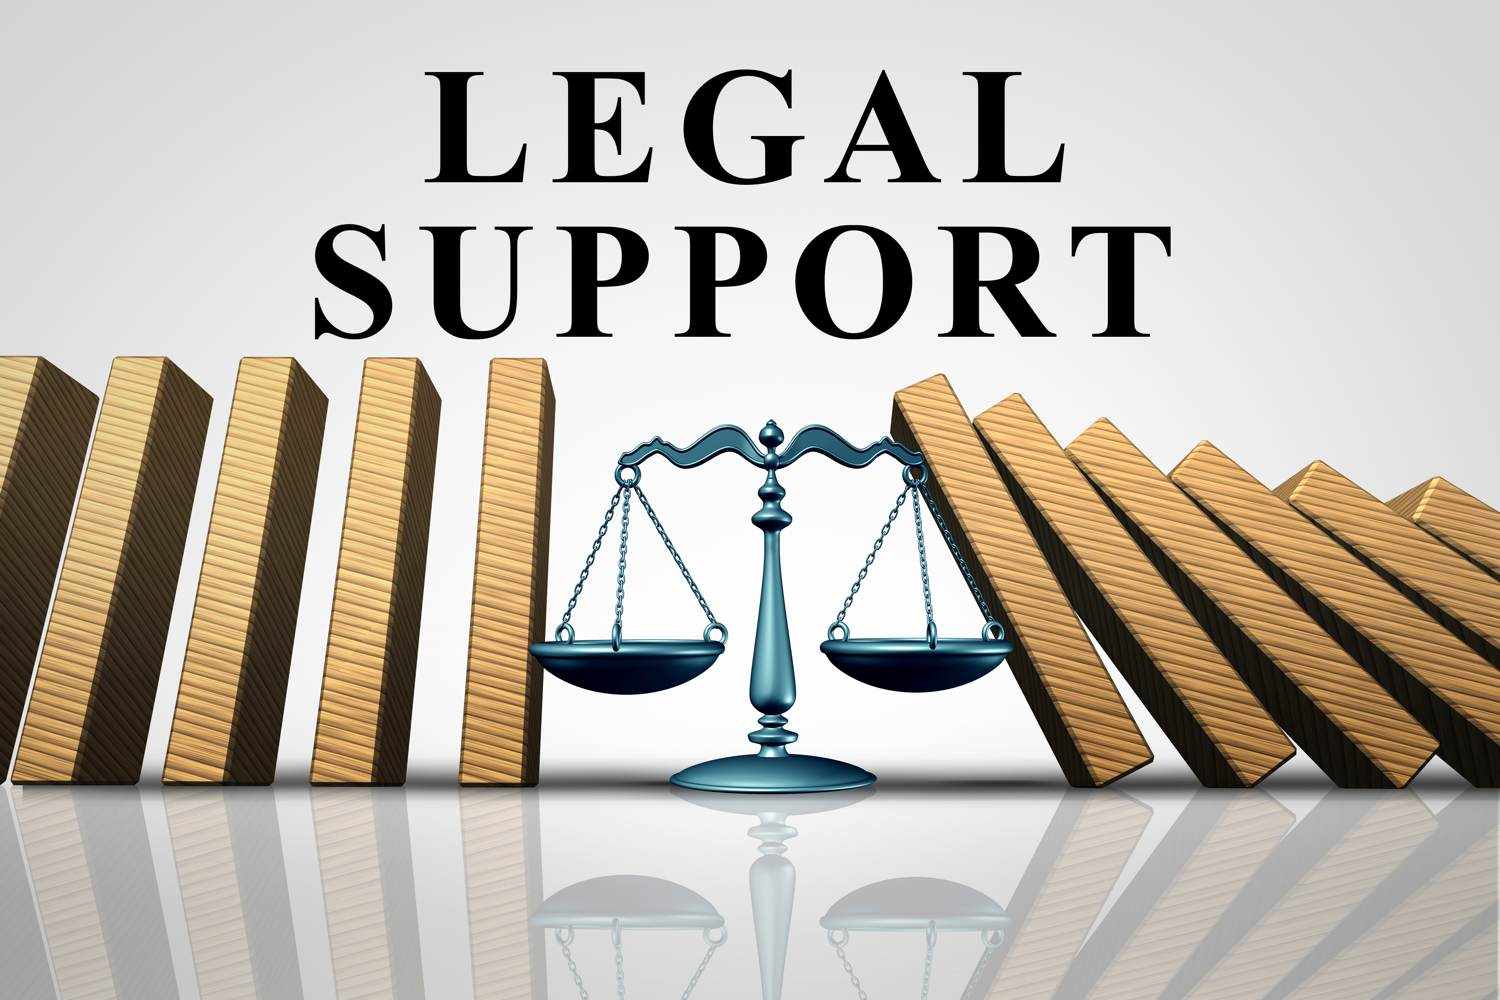 shu-Legal support-517639498-Lightspring-edited 1500x1000